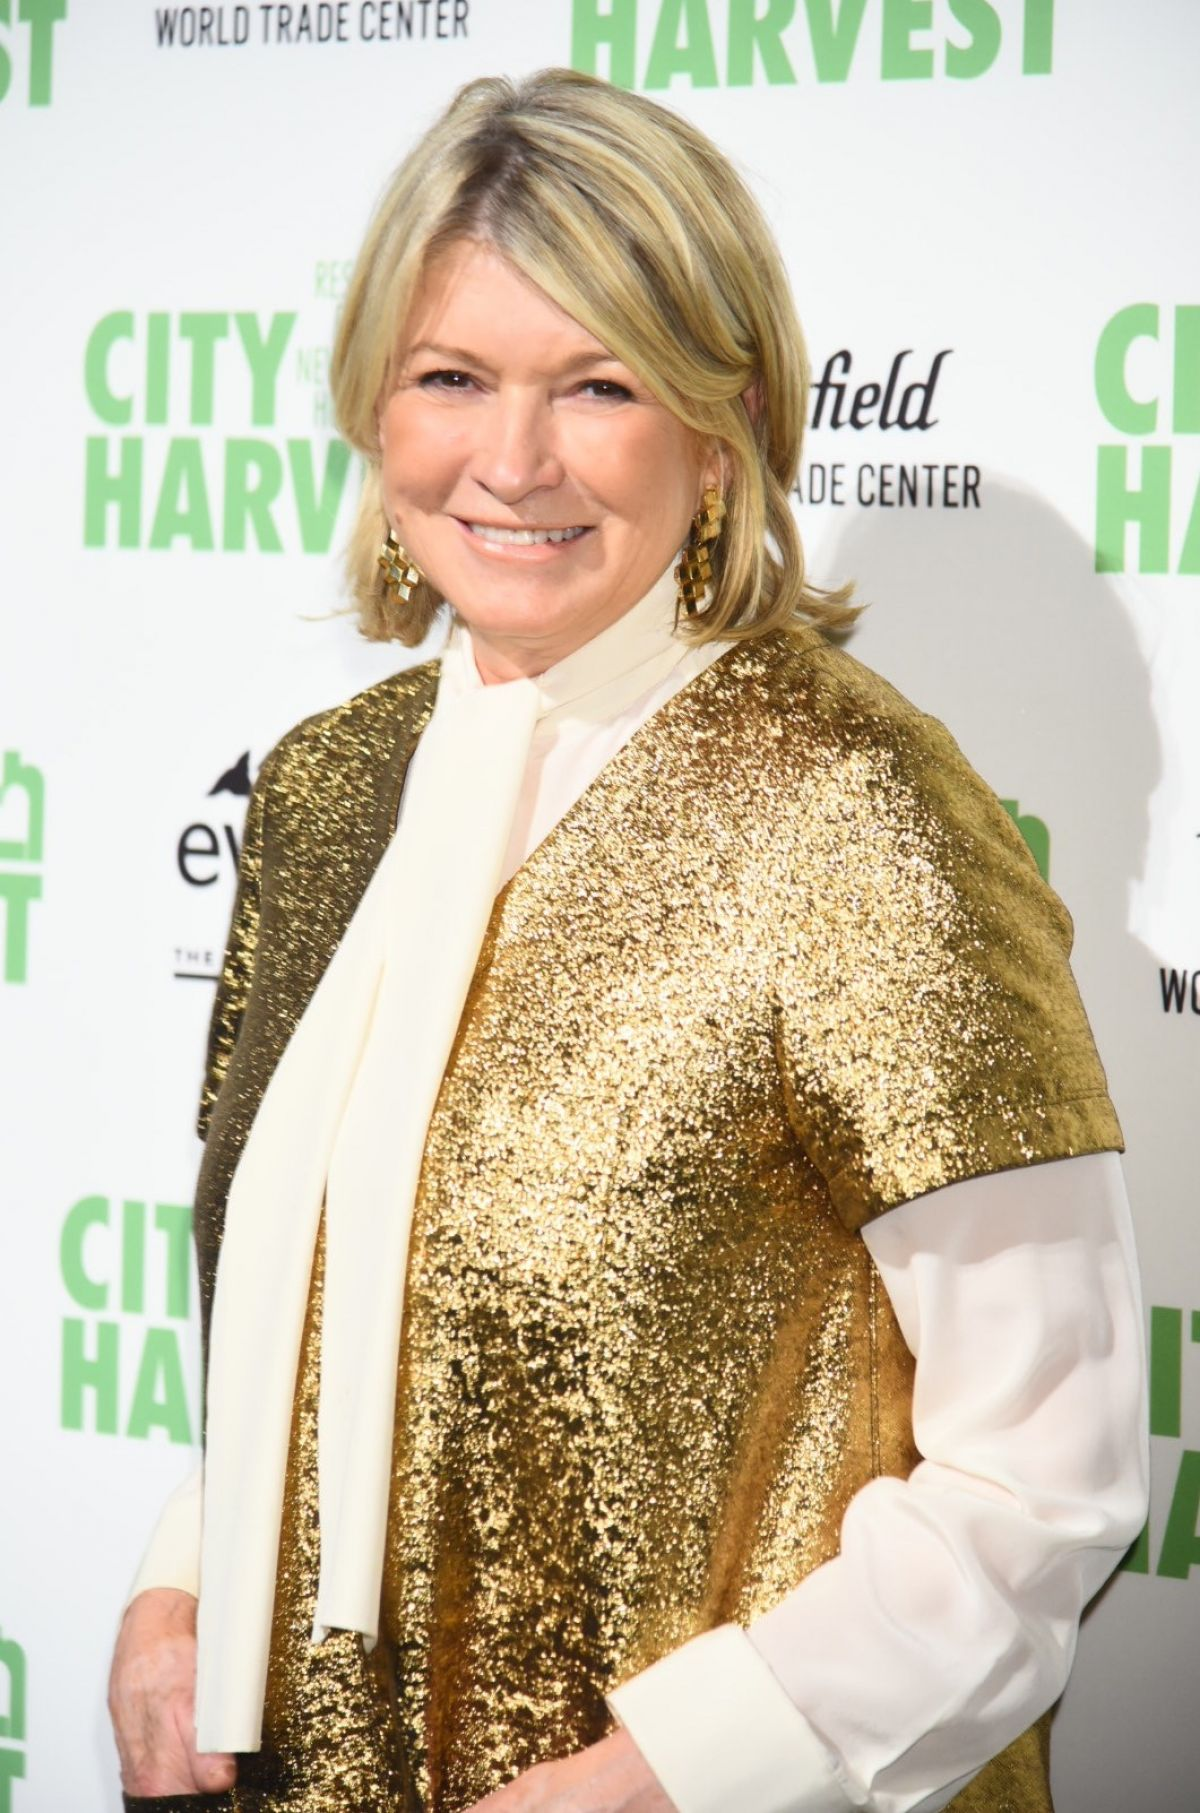 MARTHA STEWART at City Harvest